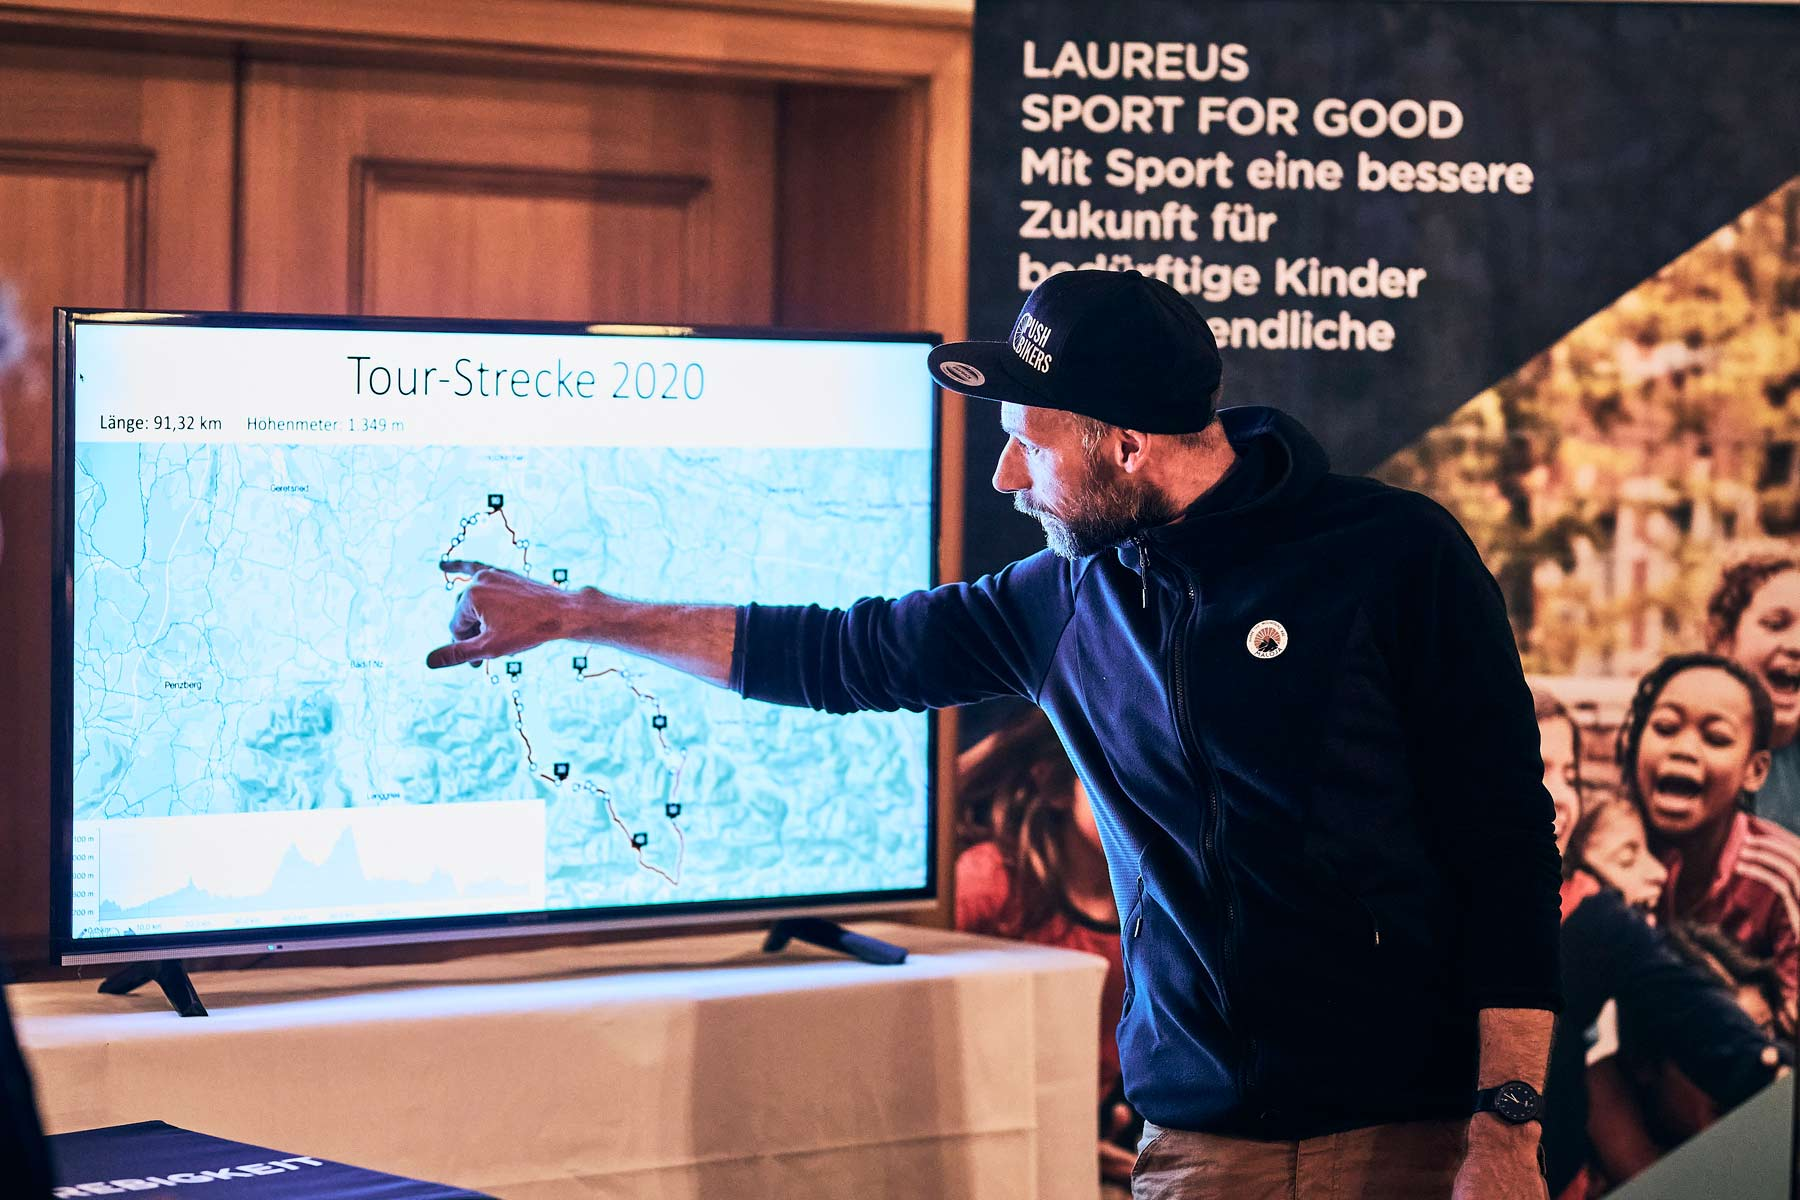 Our cooperation with Laureus Sport for Good